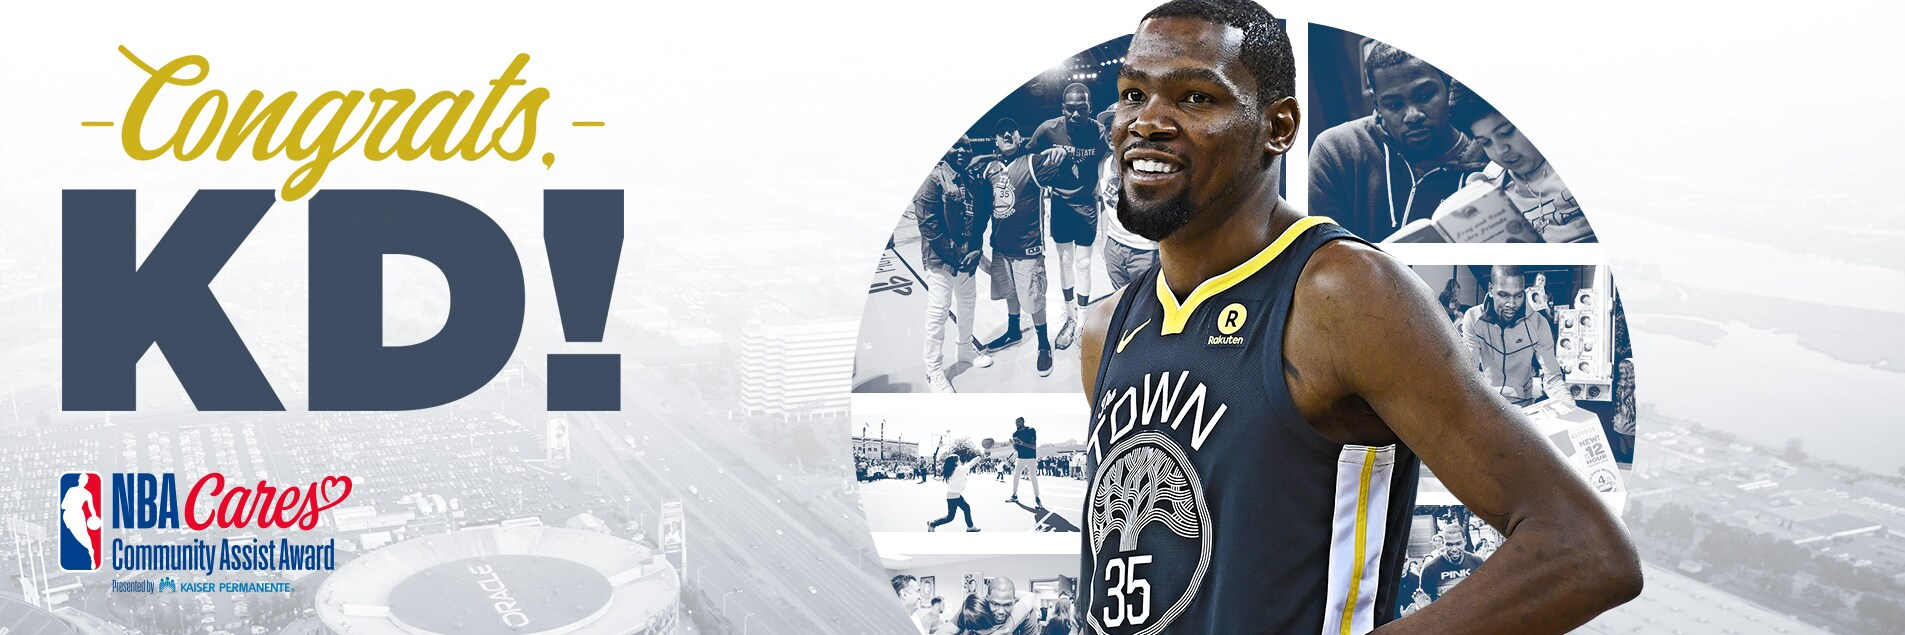 Kevin Durant Receives Seasonlong Nba Cares Community Assist inside Boys And Girls Club Of Durant Year Calender